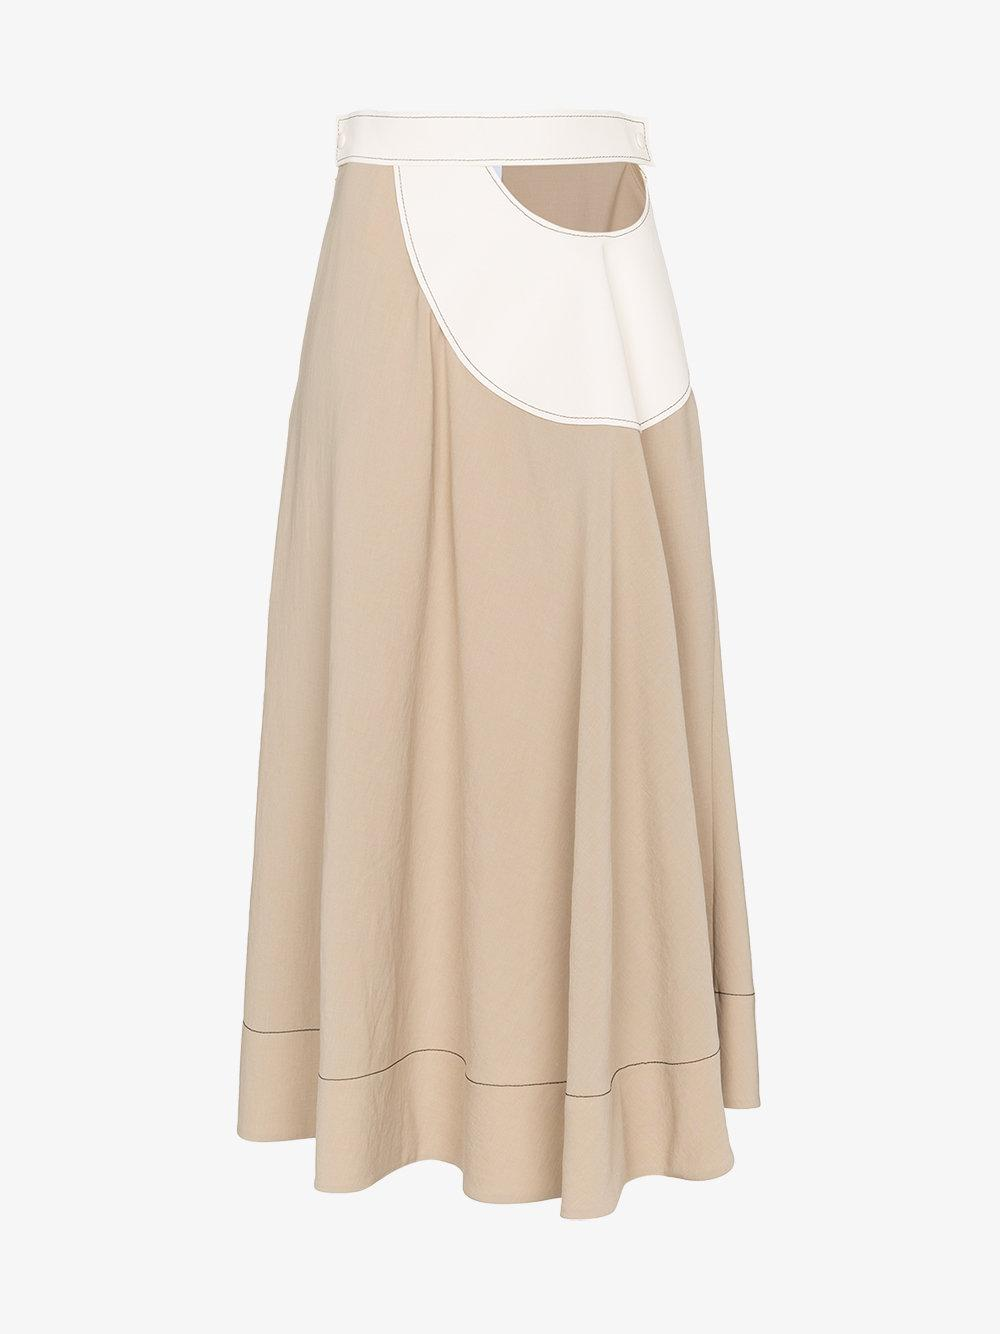 Loewe Cut Out Leather Insert Midi Skirt Best Sale Cheap Price Buy Online With Paypal Cheap Geniue Stockist Cheap Buy C2rbONS